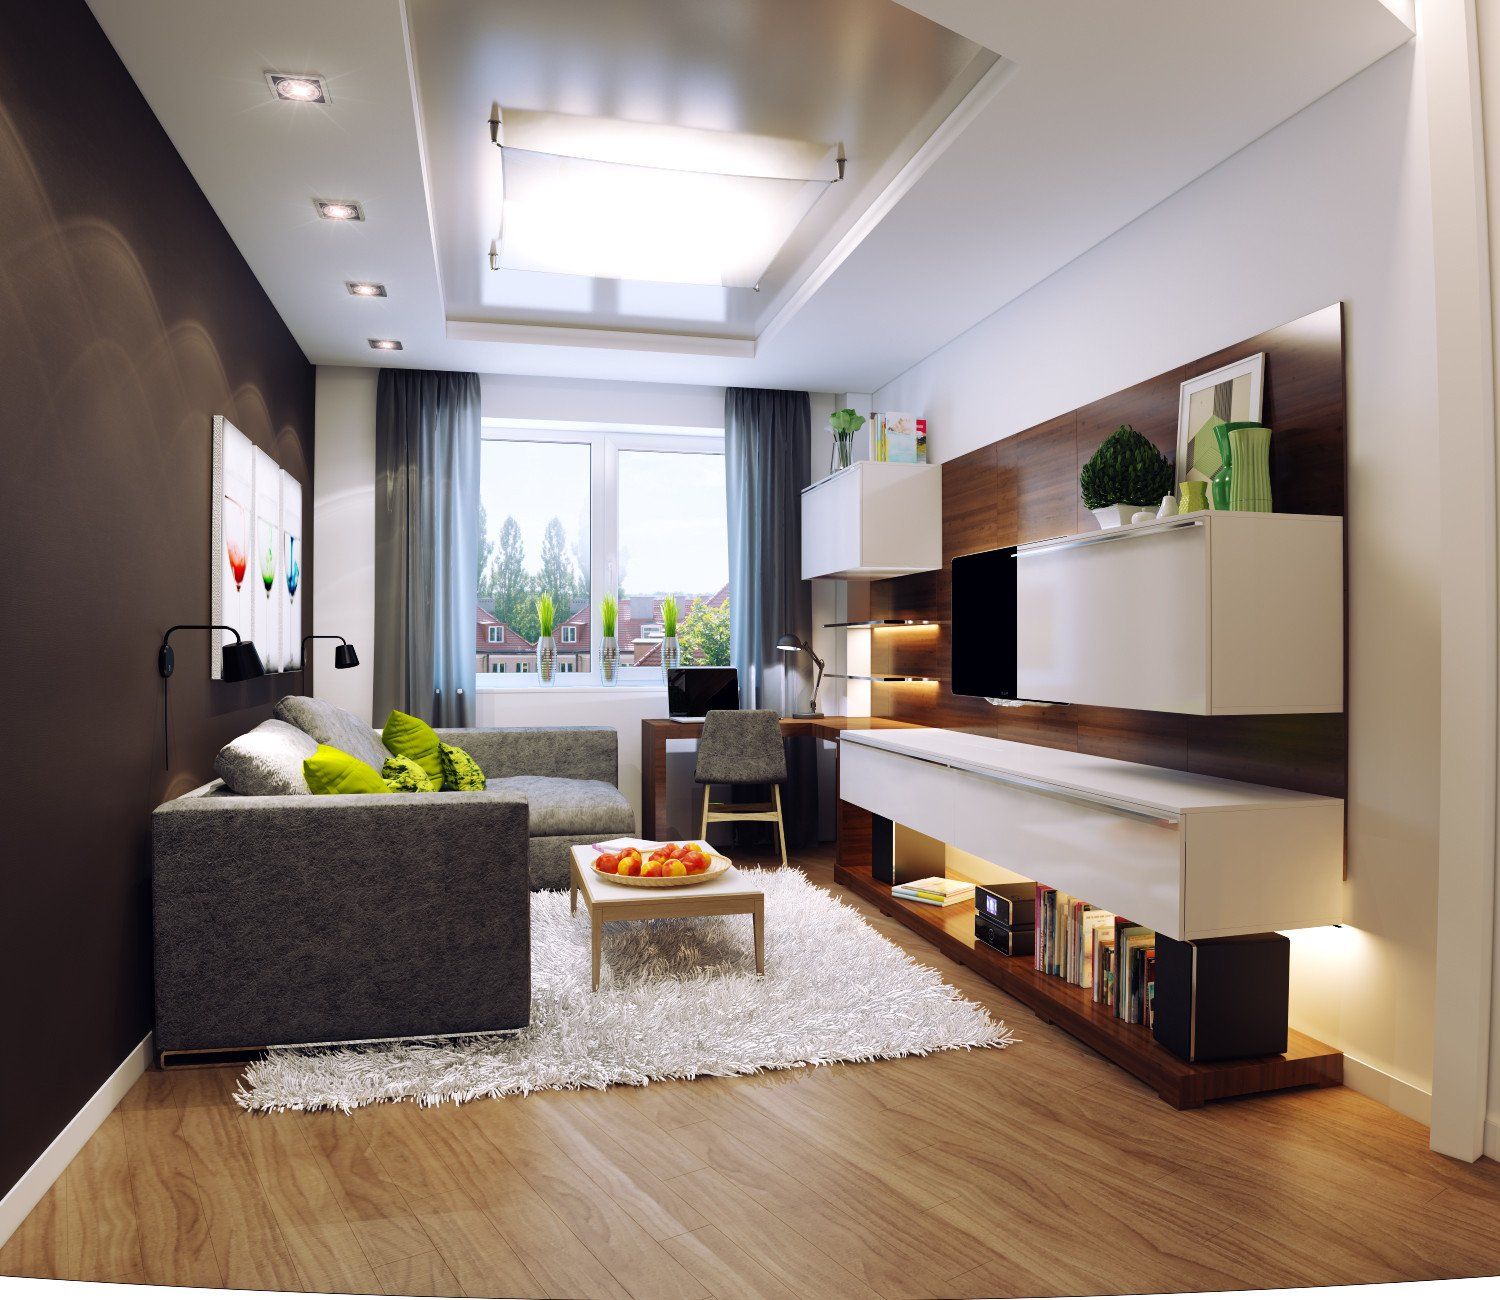 Small Apartment Living Room Decor Luxury 50 Best Small Living Room Design Ideas for 2019